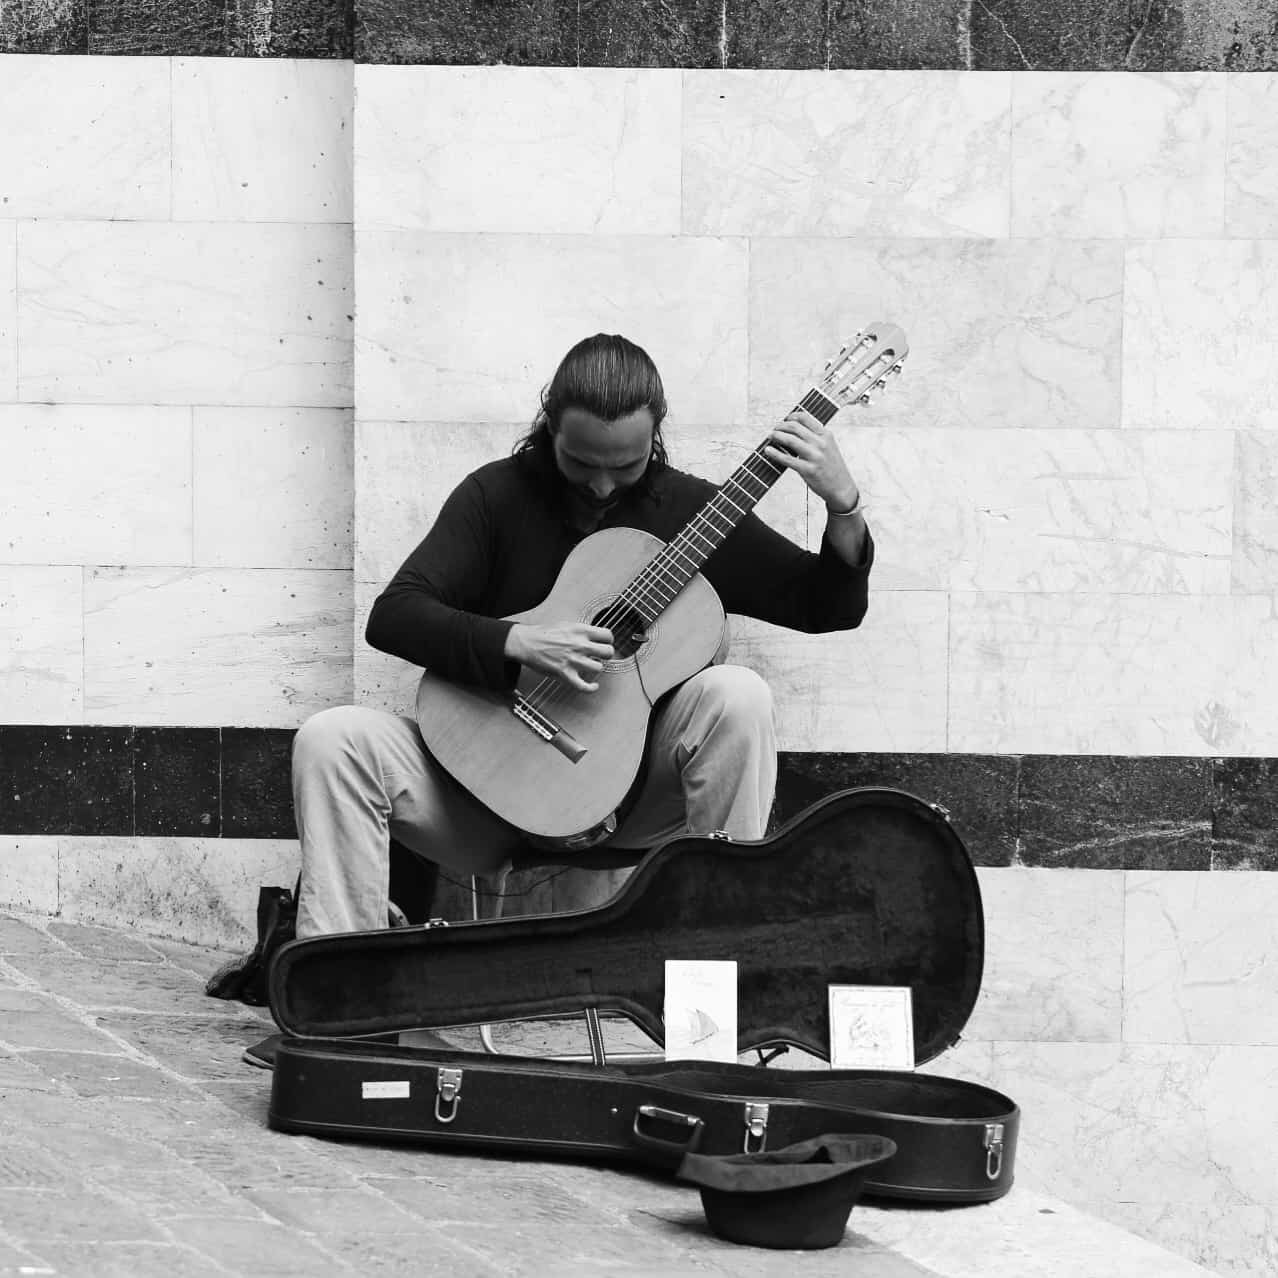 Portraits of Italy: street musician in Siena